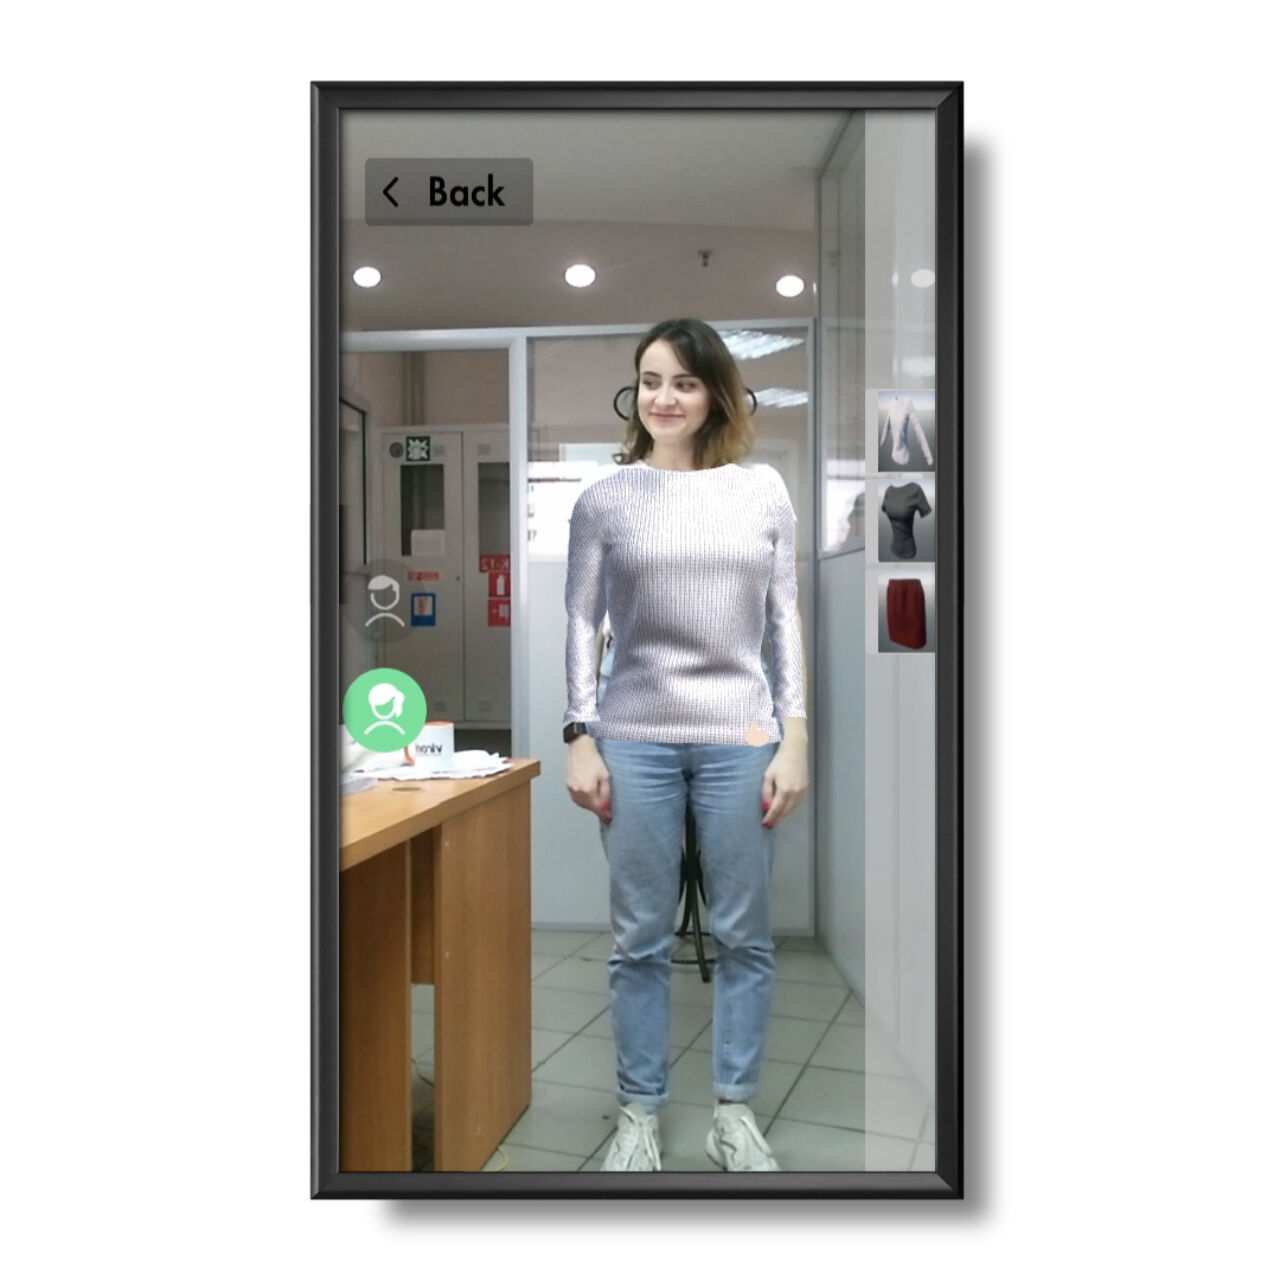 AR Fitting Room preview